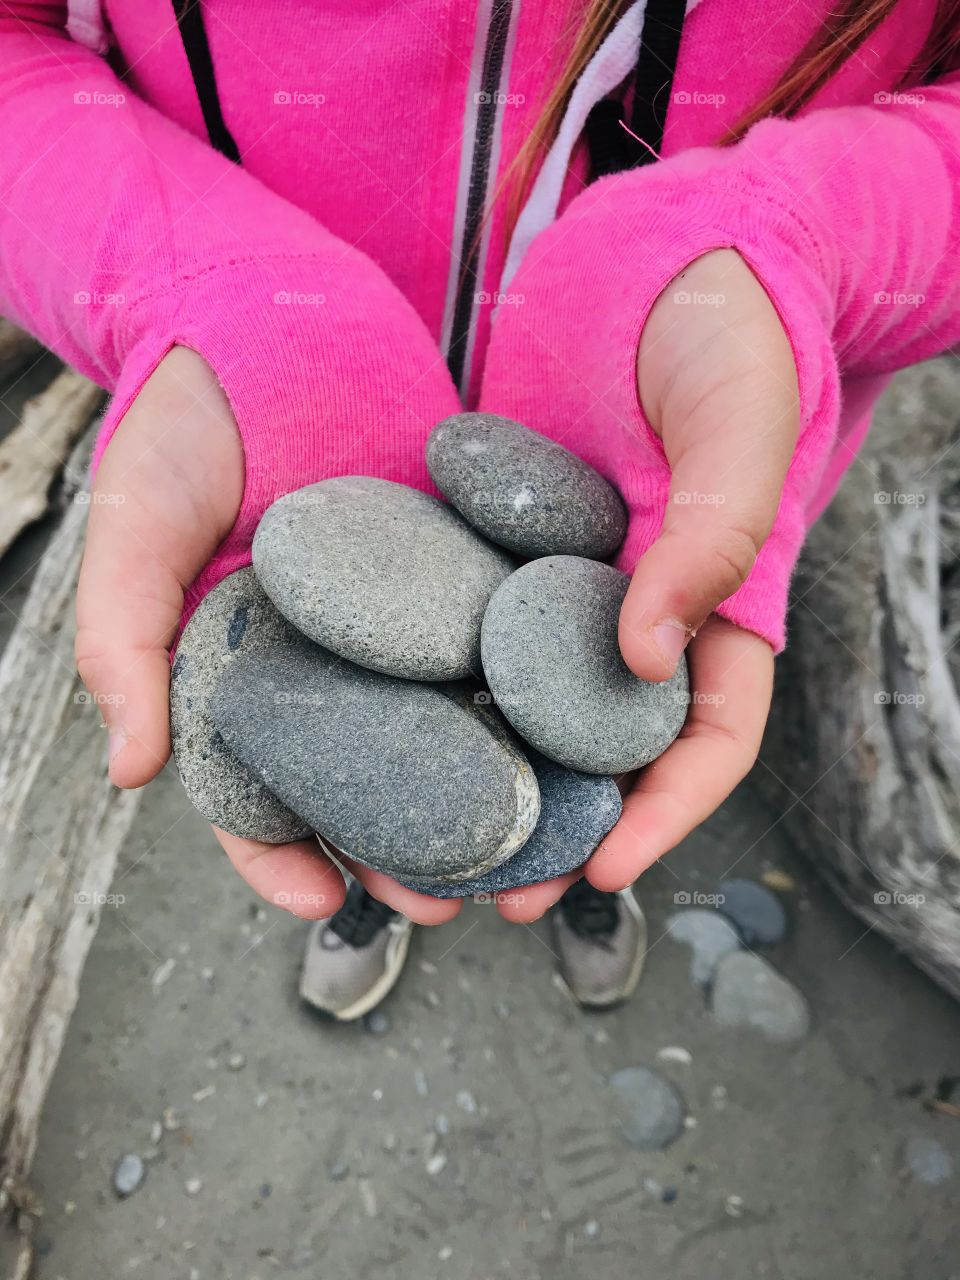 Smooth gray rocks in hands of girl wearing beautiful bright pink sweatshirt and perfect tennis for beach combing!